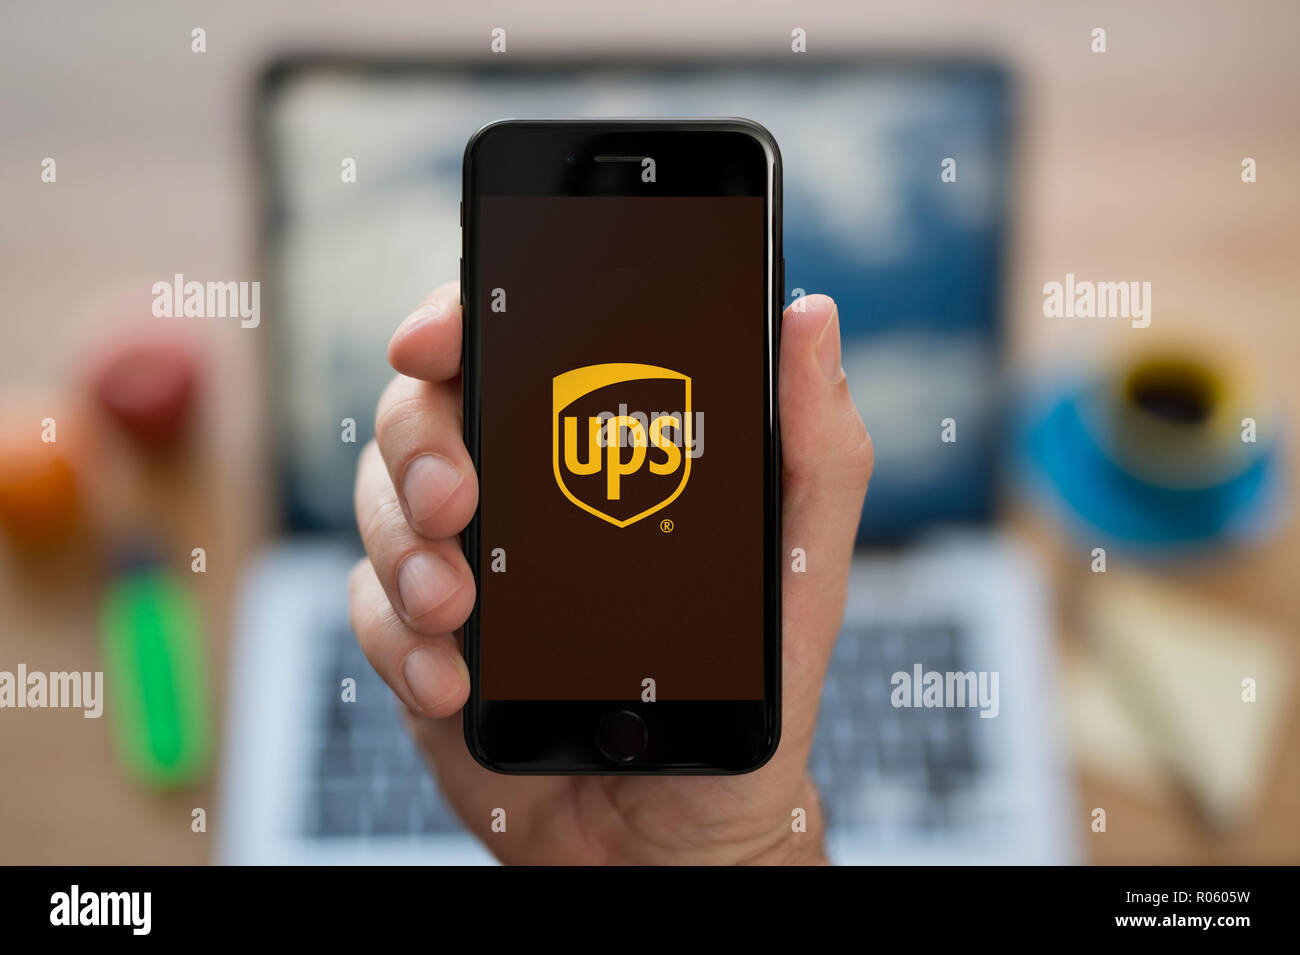 A man looks at his iPhone which displays the UPS logo, while sat at his computer desk (Editorial use only). - Stock Image